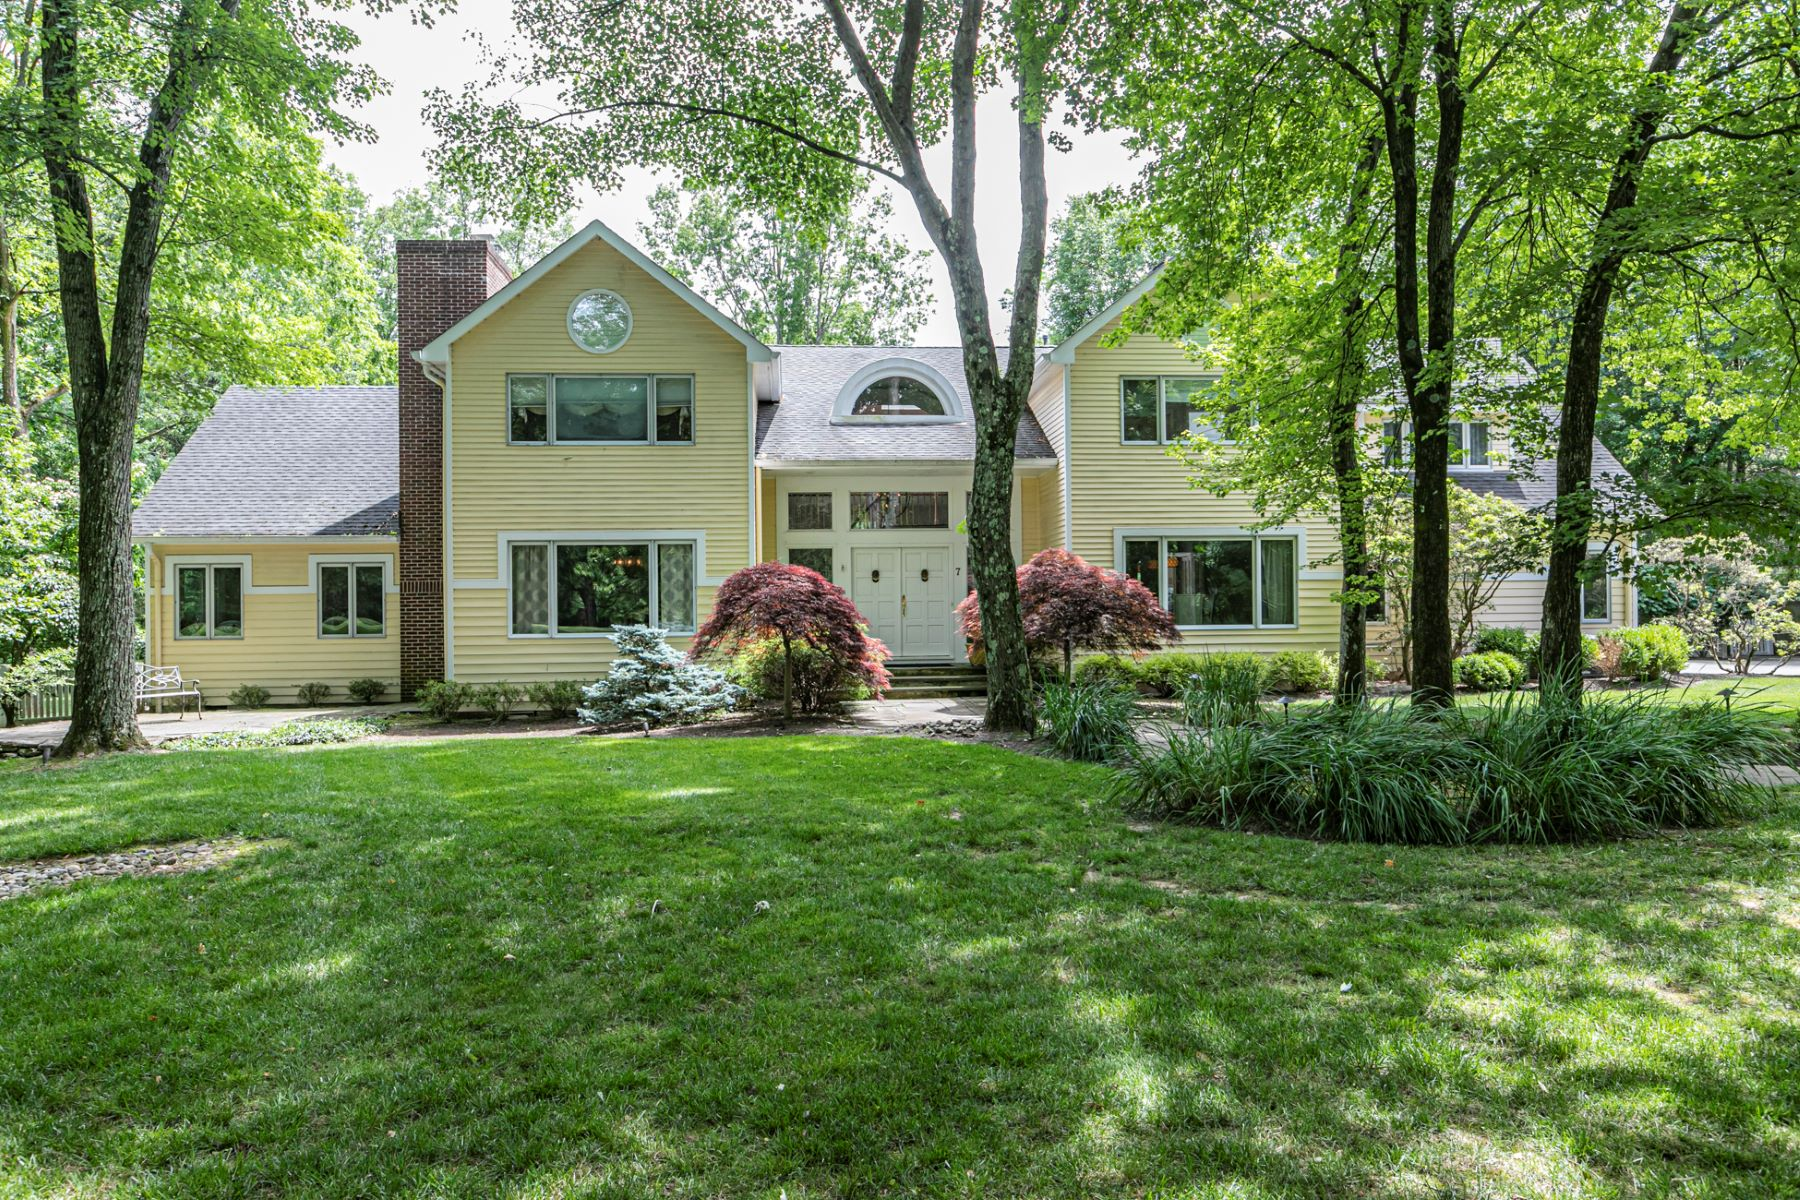 Single Family Homes for Sale at A Backyard Worthy of the Finest Resorts 7 Benedek Road, Princeton, New Jersey 08540 United States